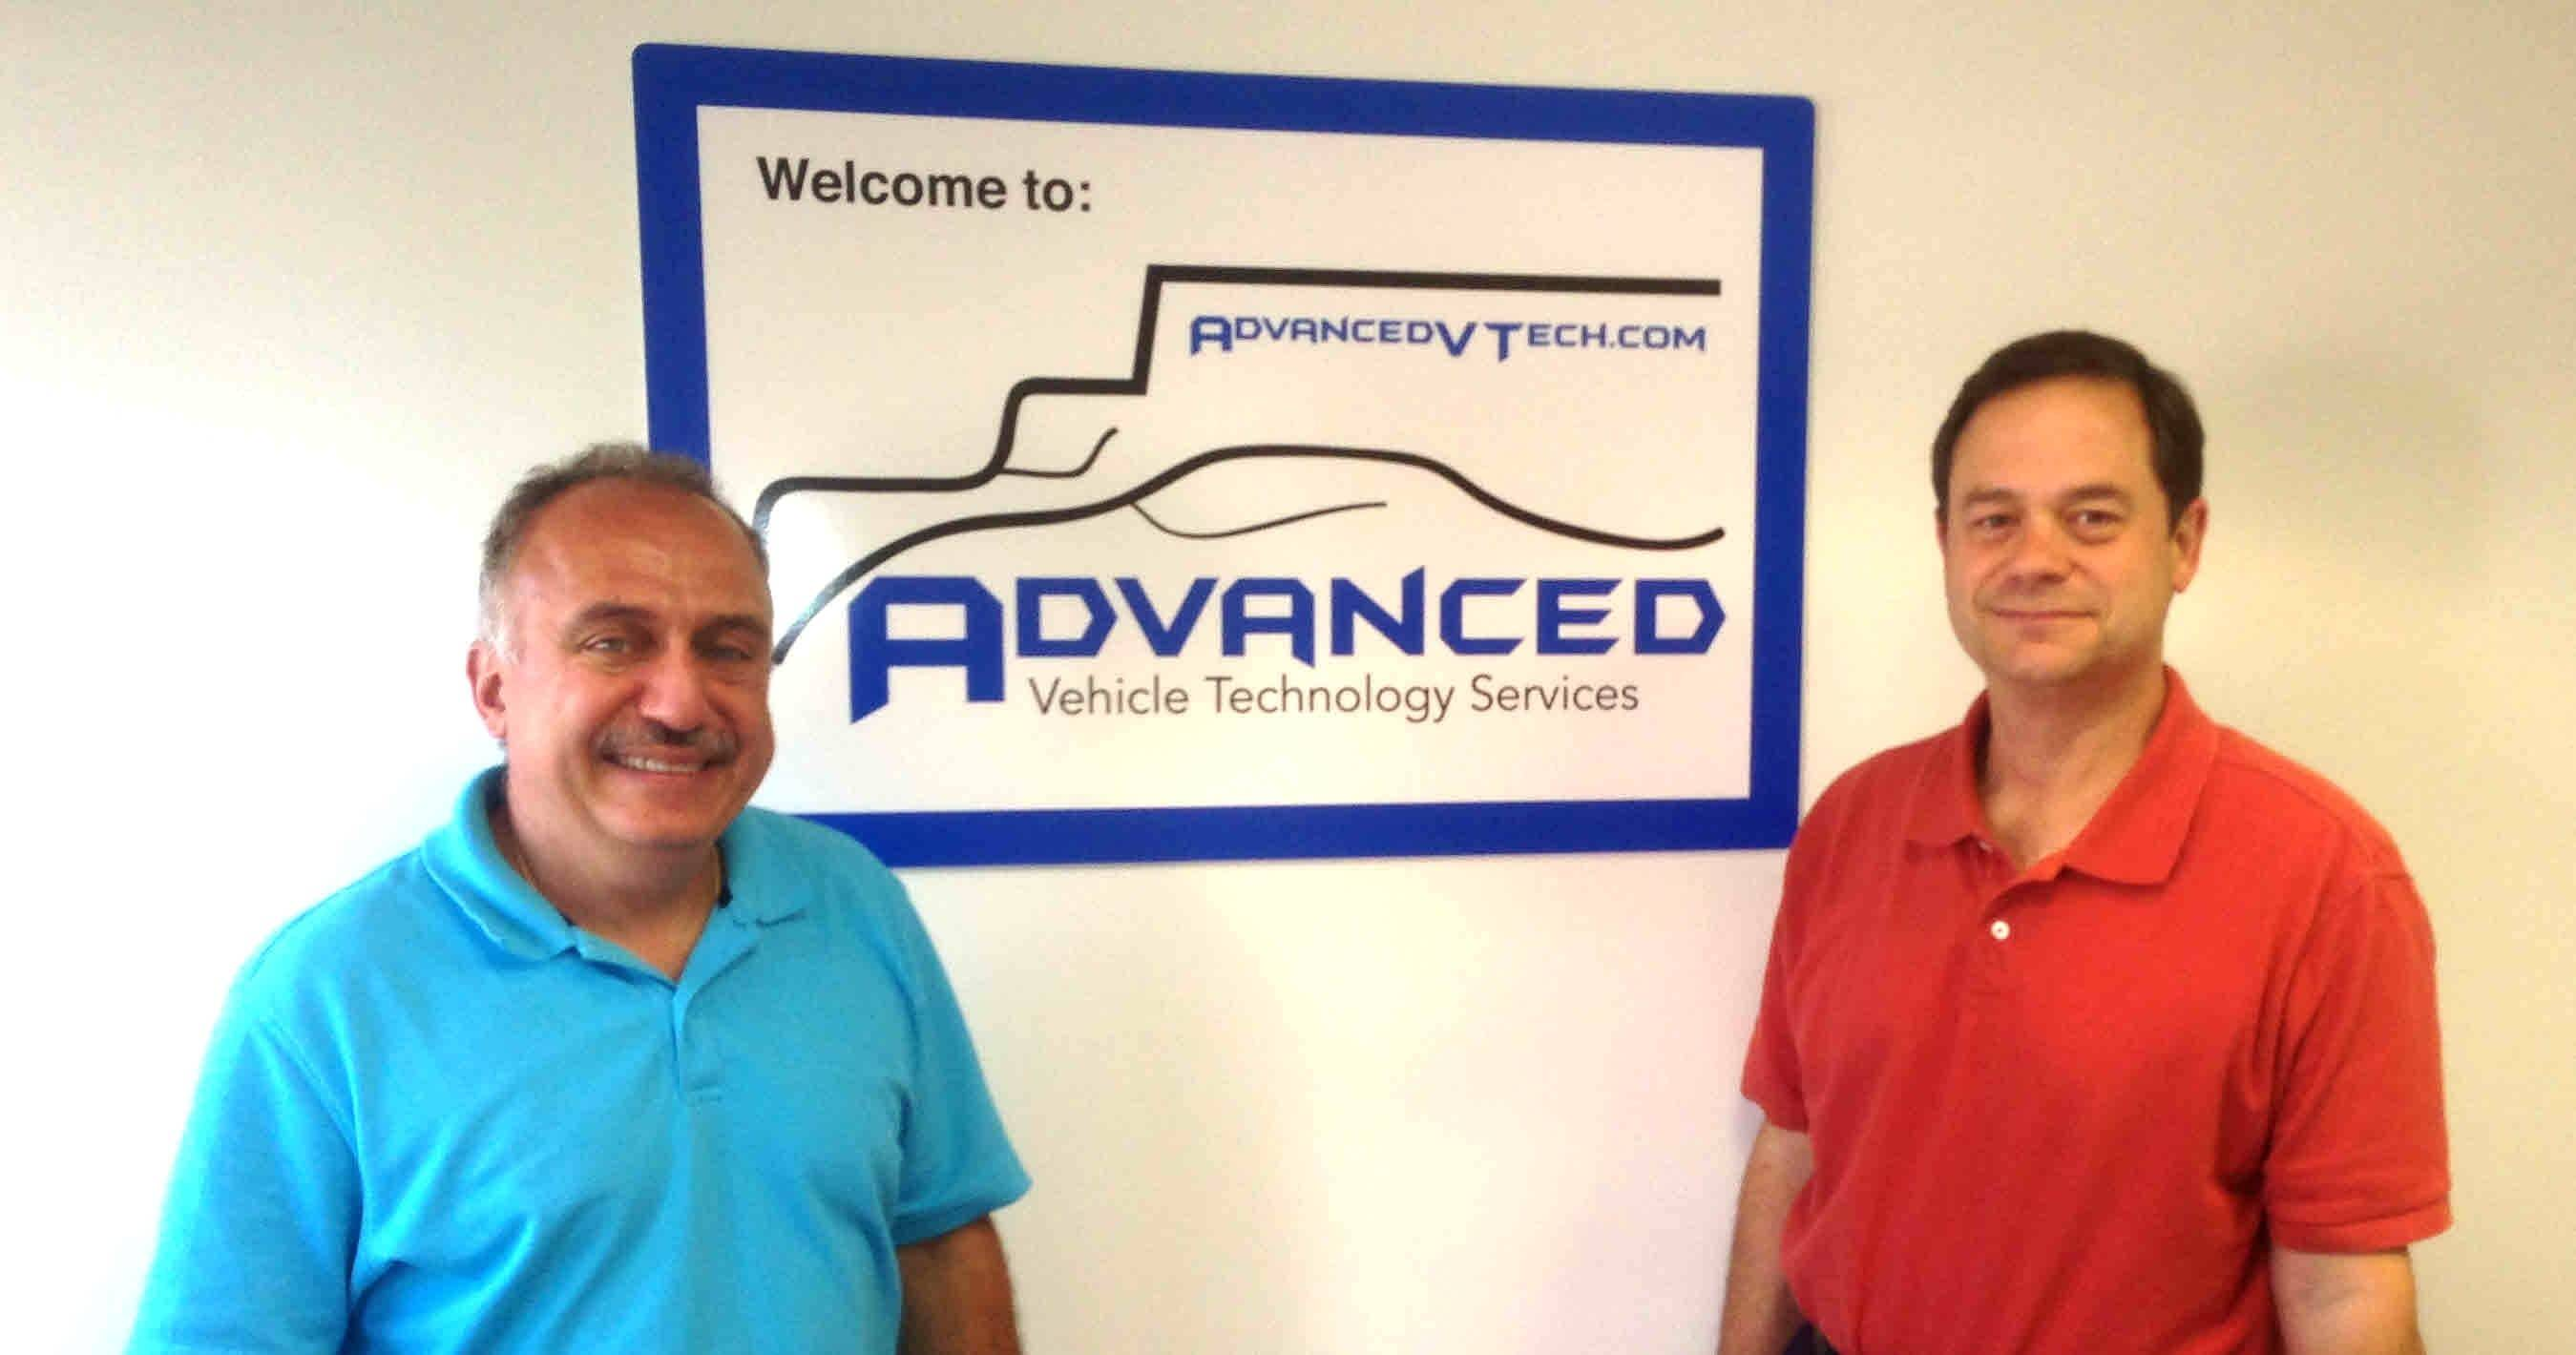 David Hagopian, vice president of operations, left, and Ron Sheble, vice president of finance head Advanced Vehicle Technology Services Inc. in Buffalo Grove.